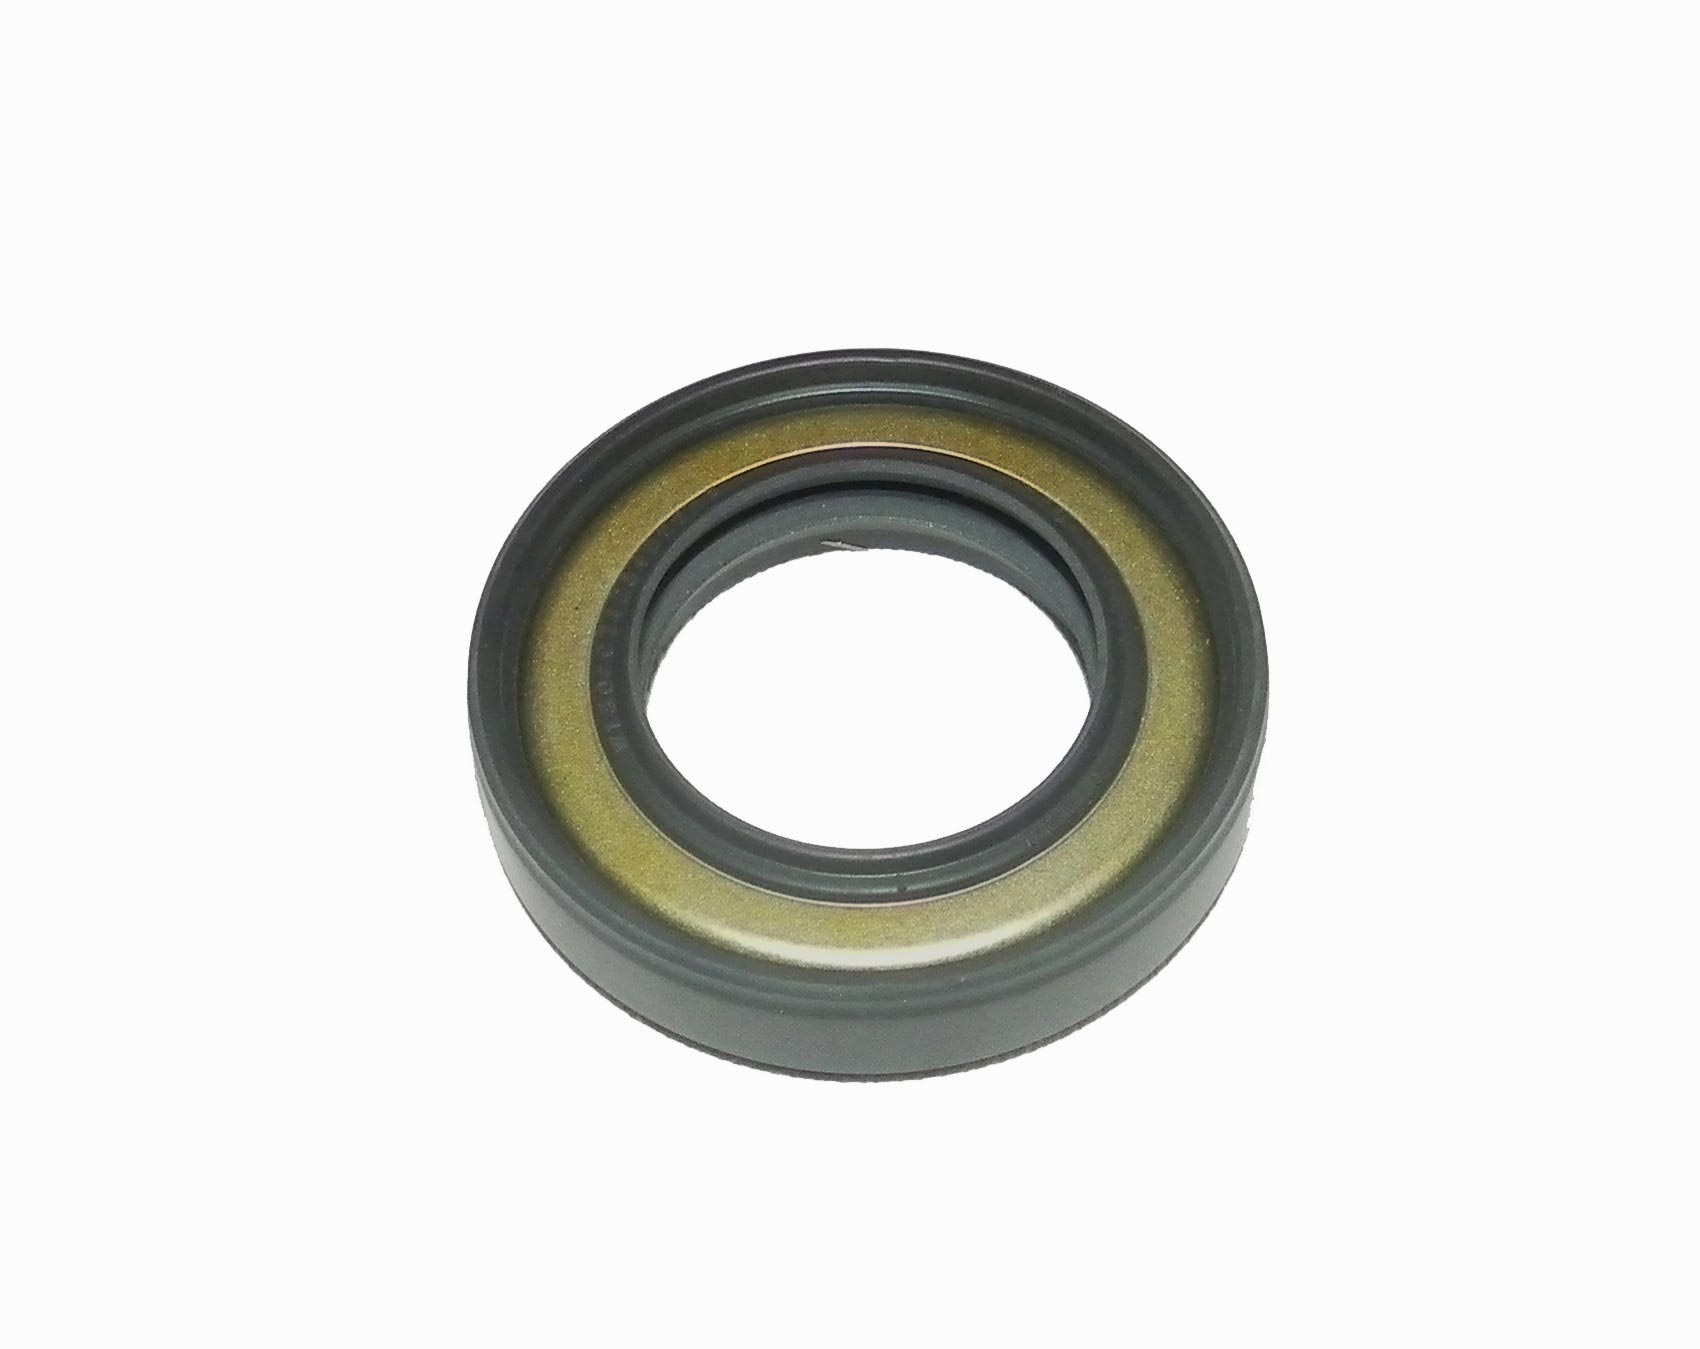 Yamaha Jet Pump Outer Seal